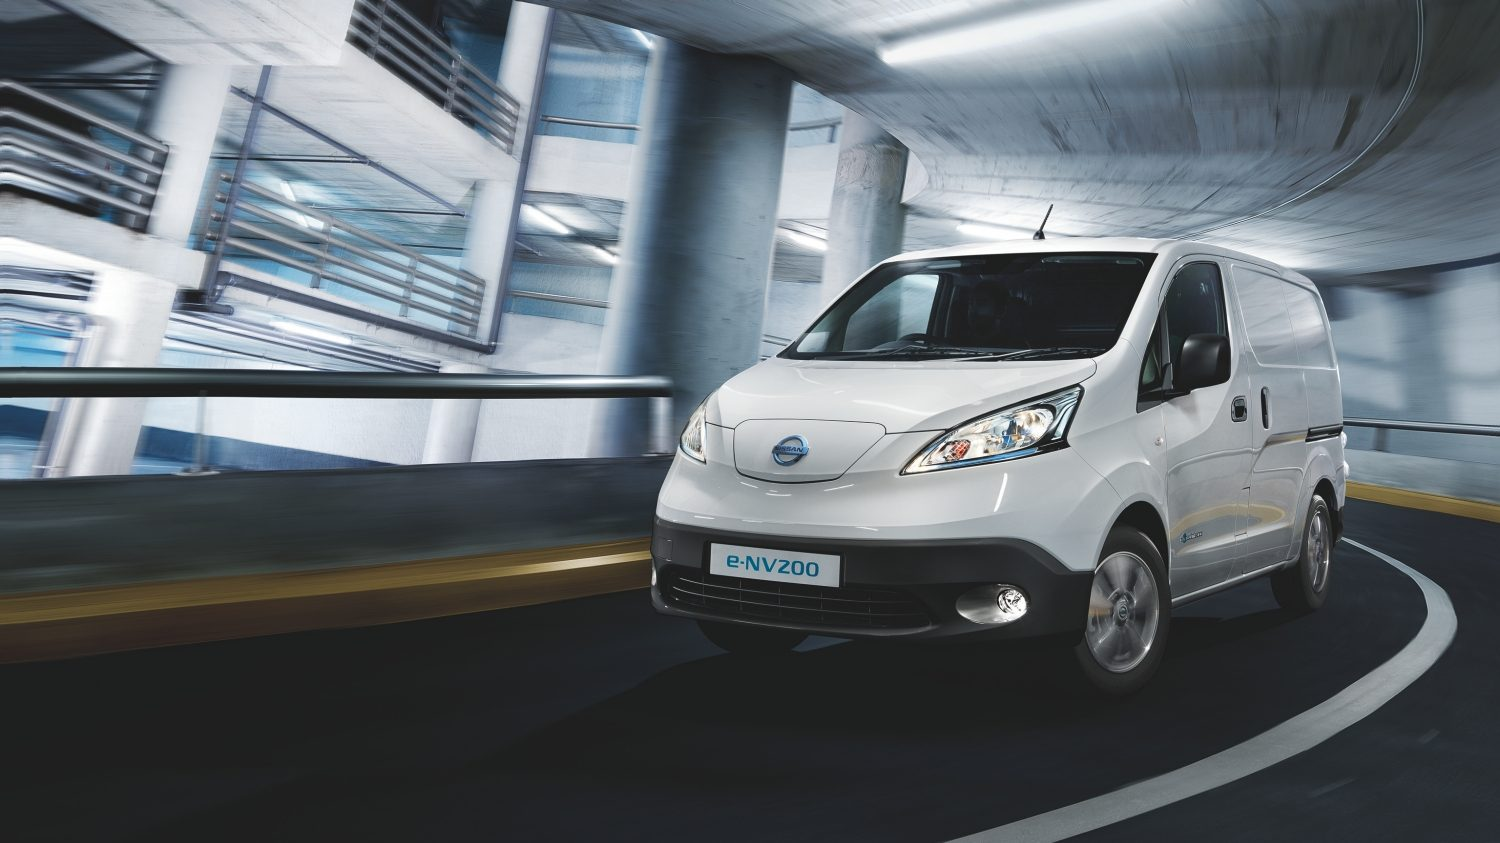 Nissan e-NV200 - 3/4 front driver side on underpass